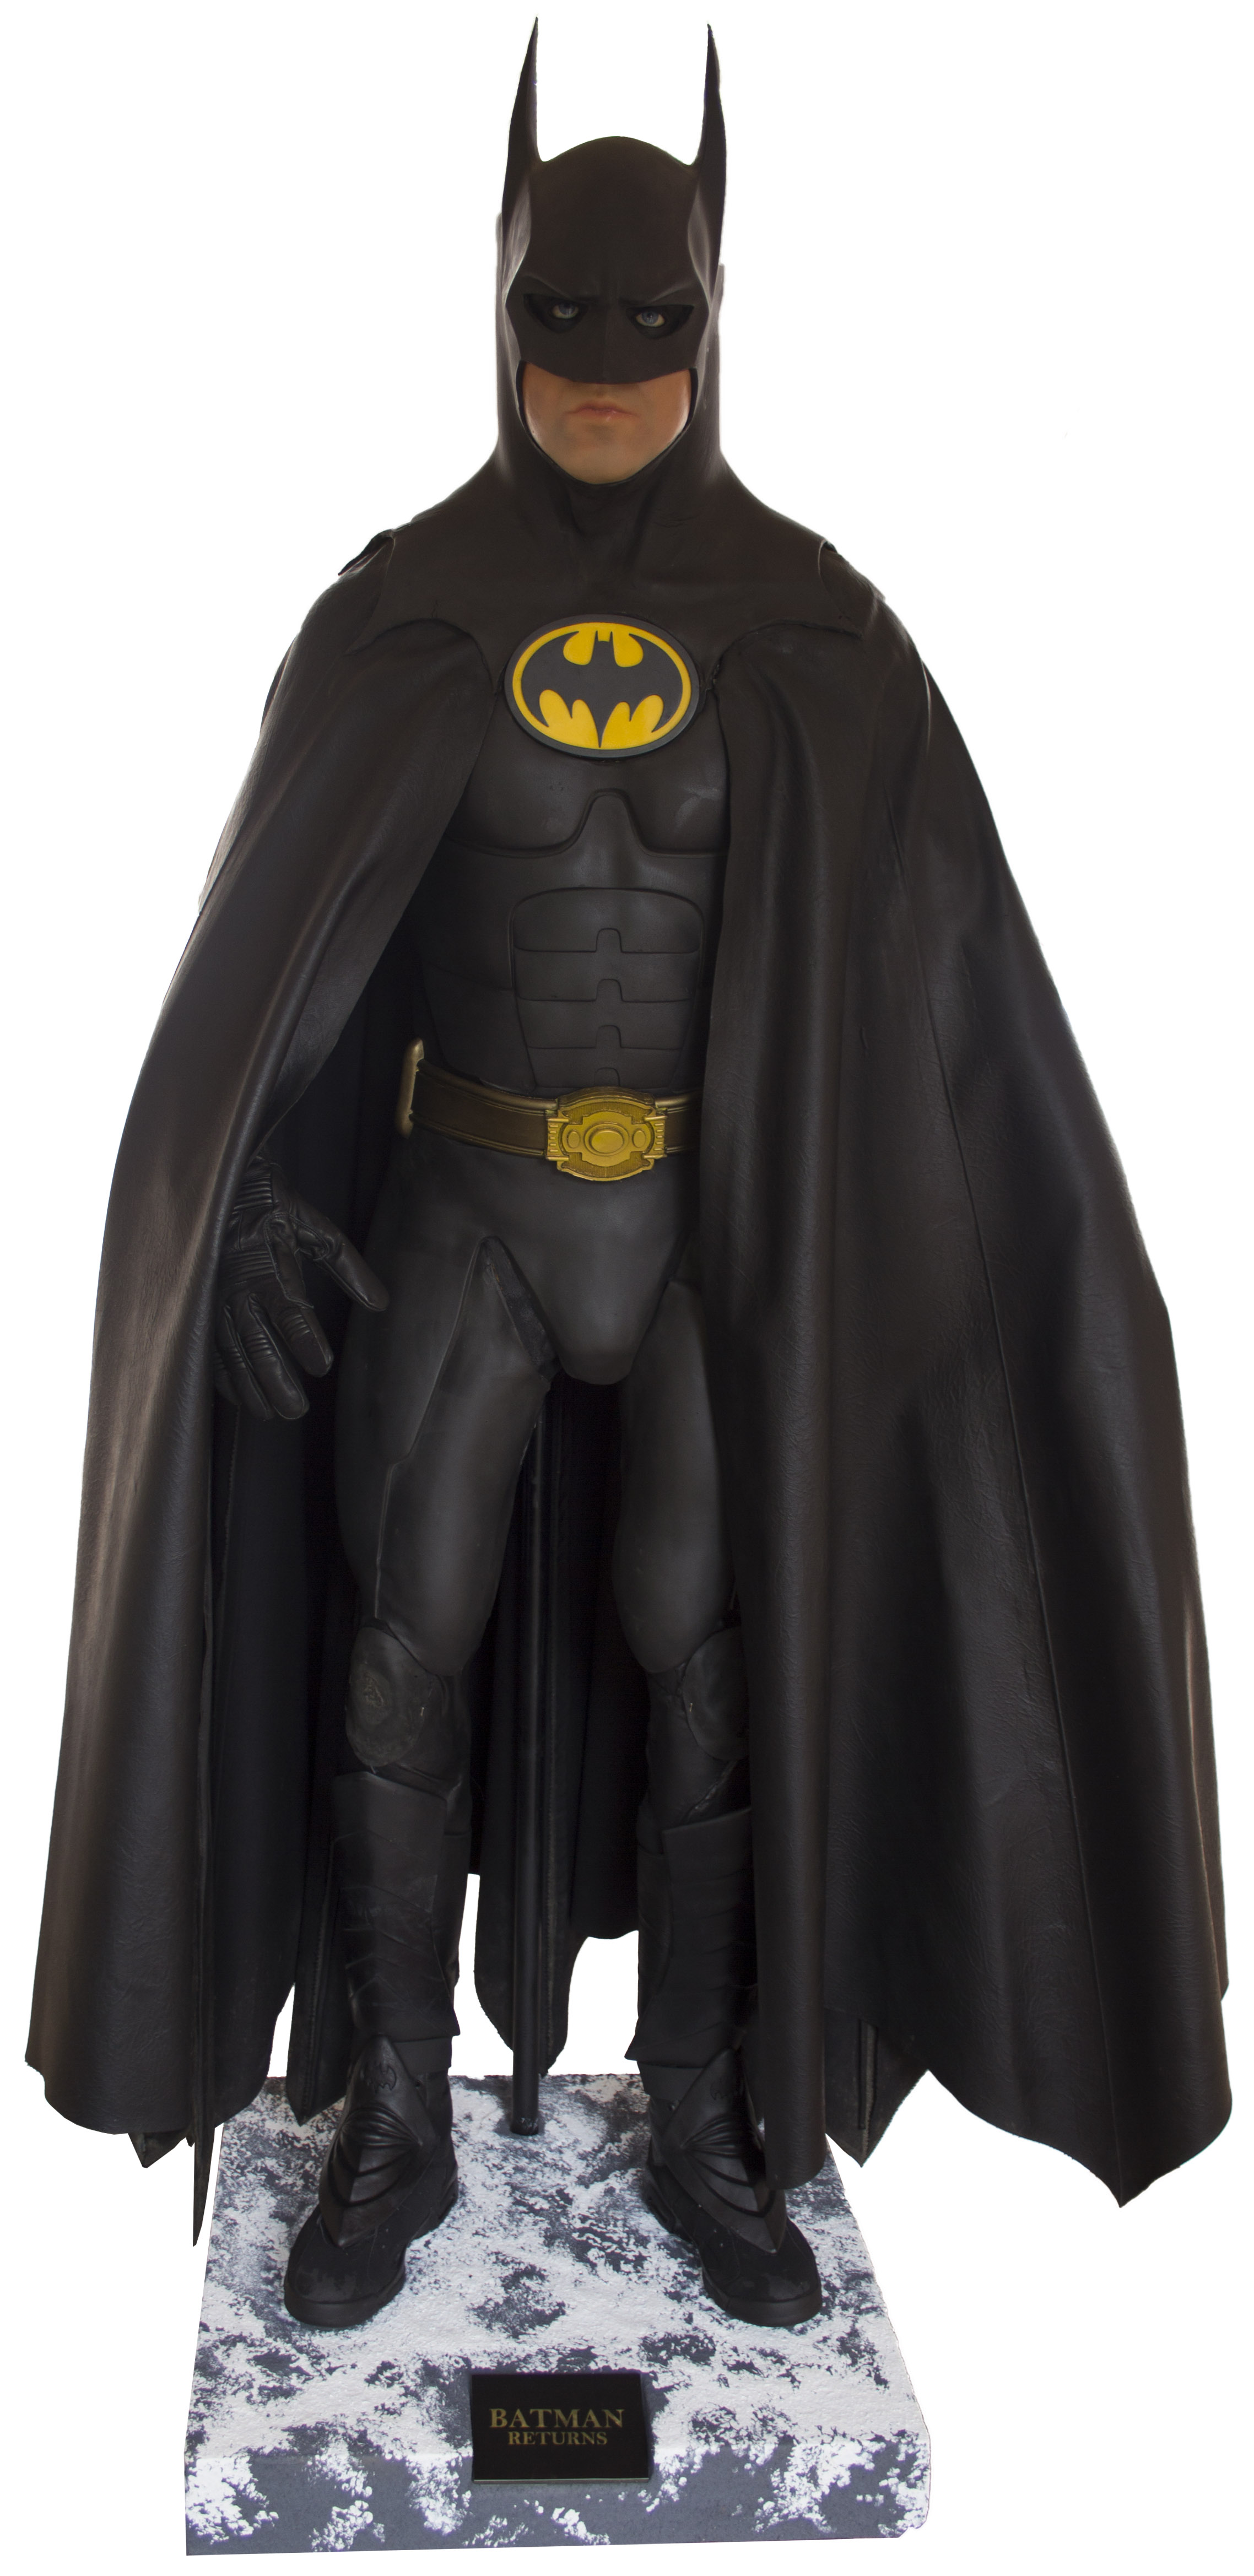 The Batsuit From Batman Returns Starring Michael Keaton -- Measures Over 6u0027 Tall on ...  sc 1 st  Nate D Sanders & Lot Detail - The Batsuit From